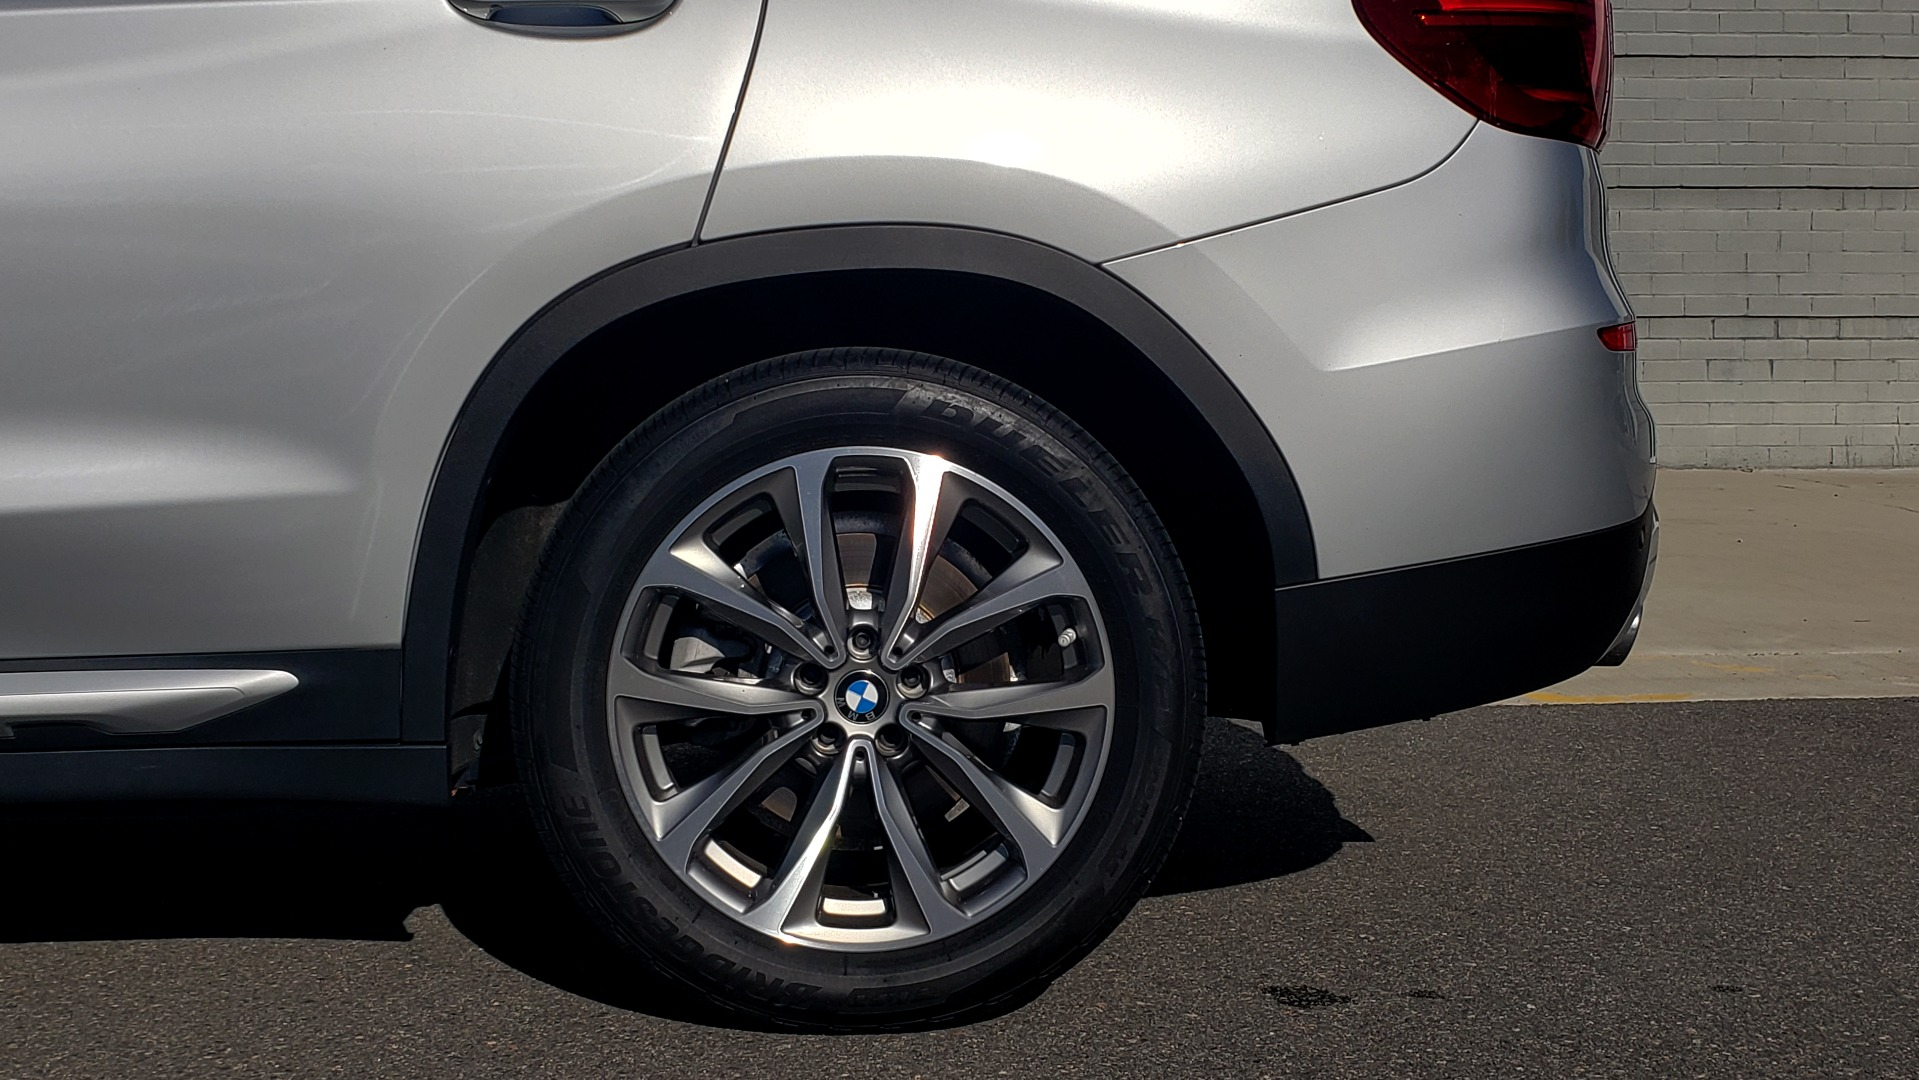 Used 2019 BMW X3 XDRIVE30I / DRVR ASST / PANO-ROOF / HTD STS / REARVIEW for sale $41,995 at Formula Imports in Charlotte NC 28227 82